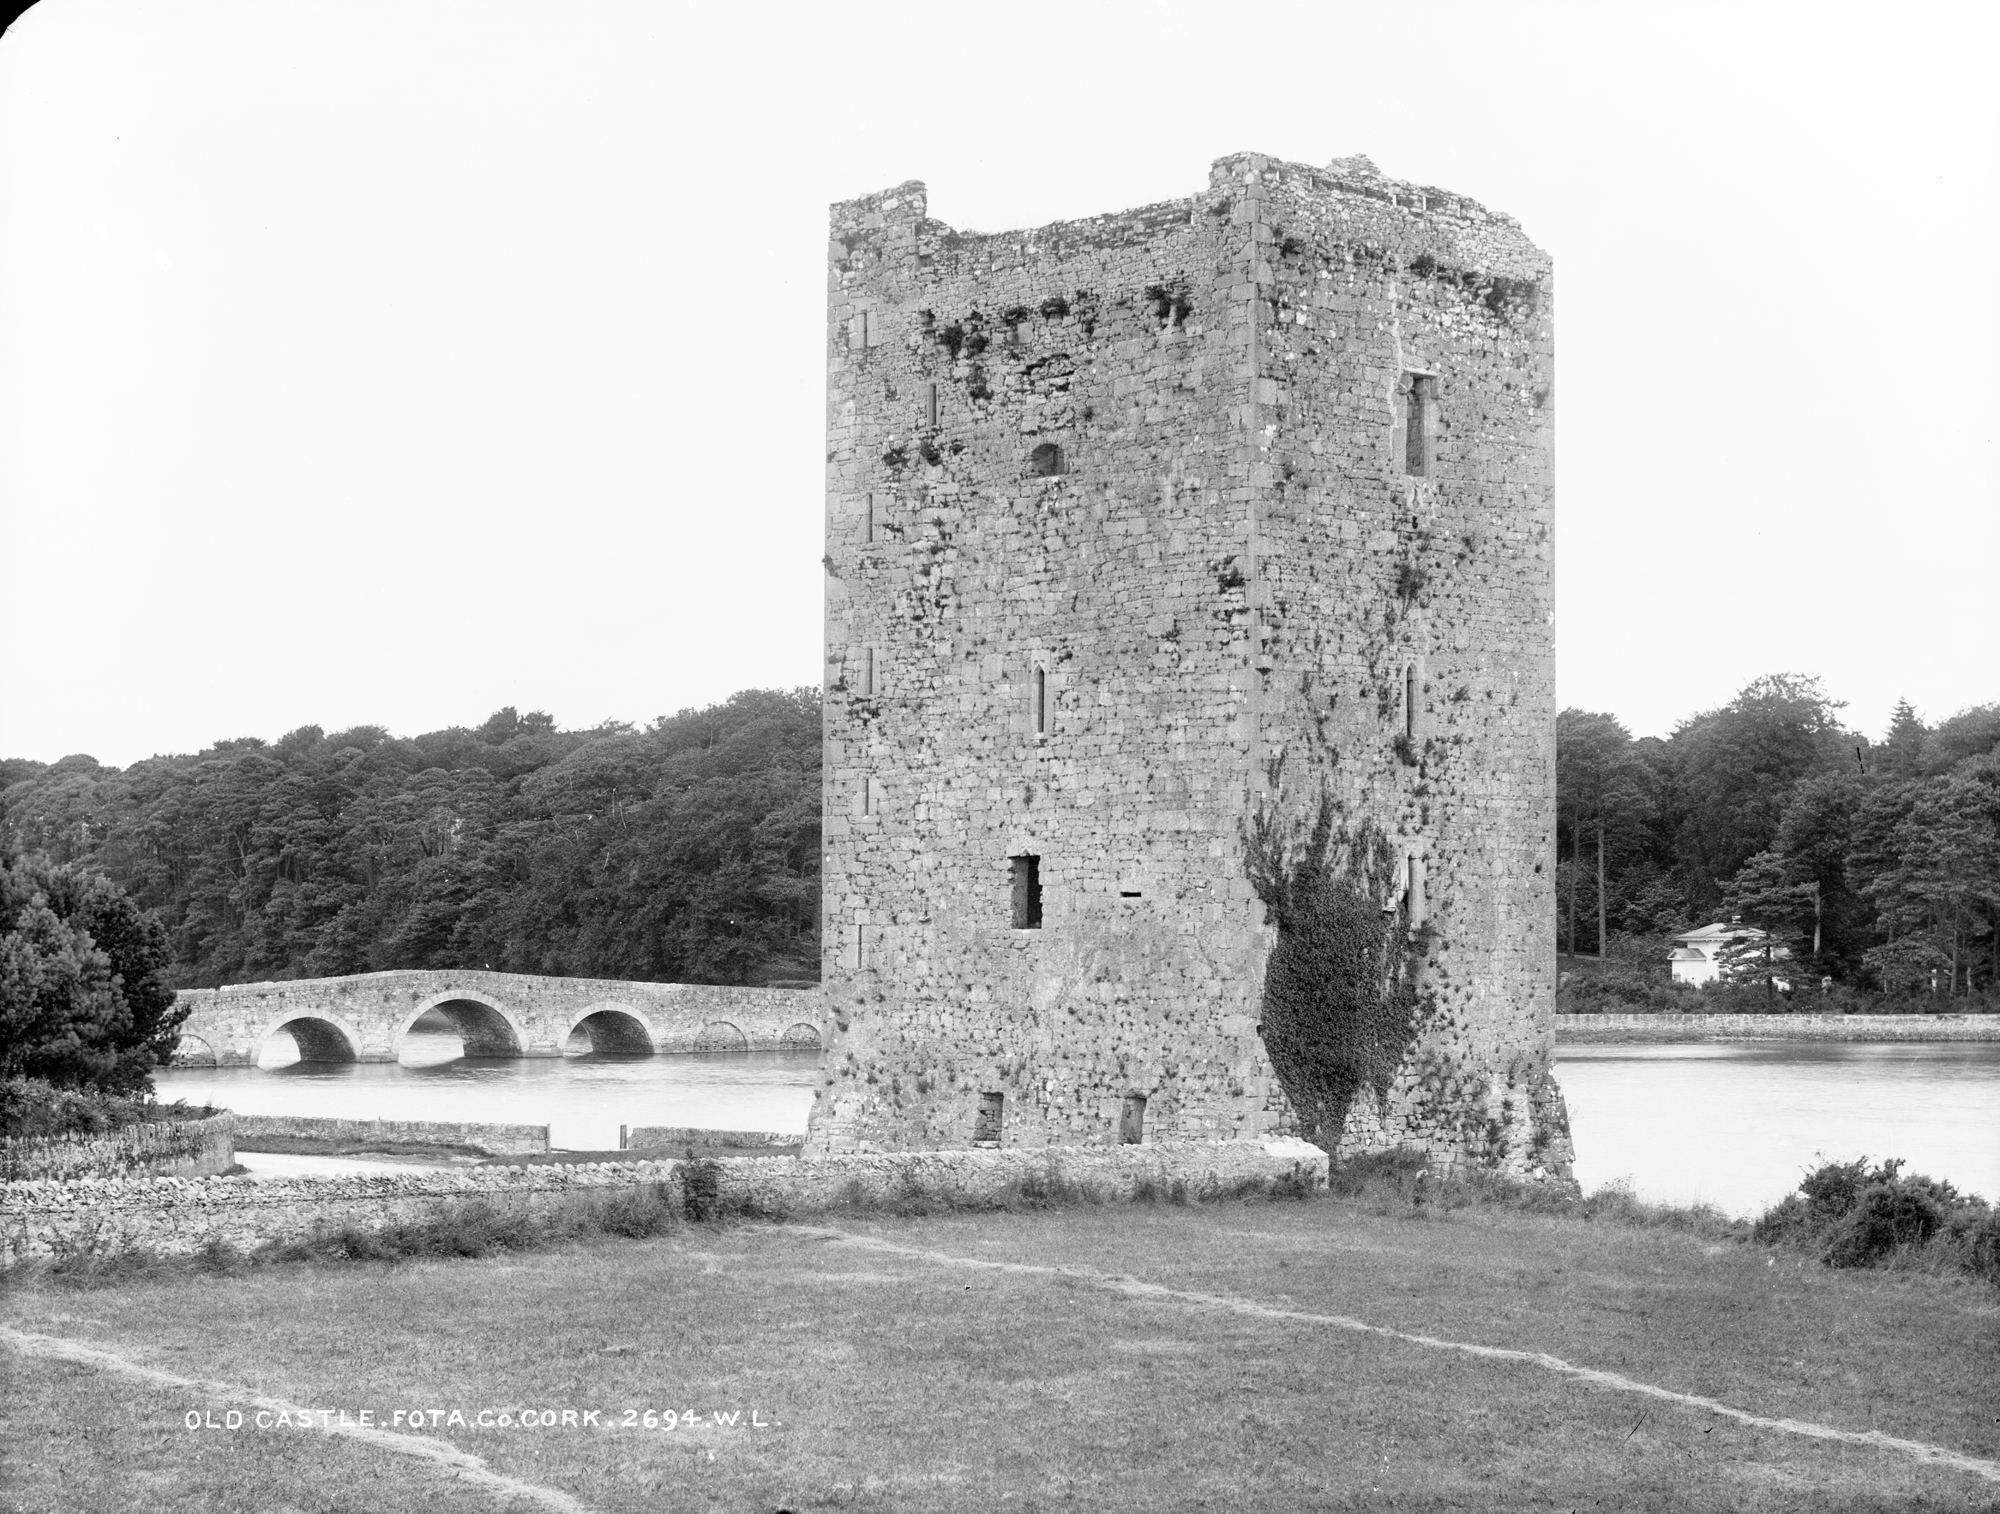 Belvelly Castle, Fota, Co. Cork